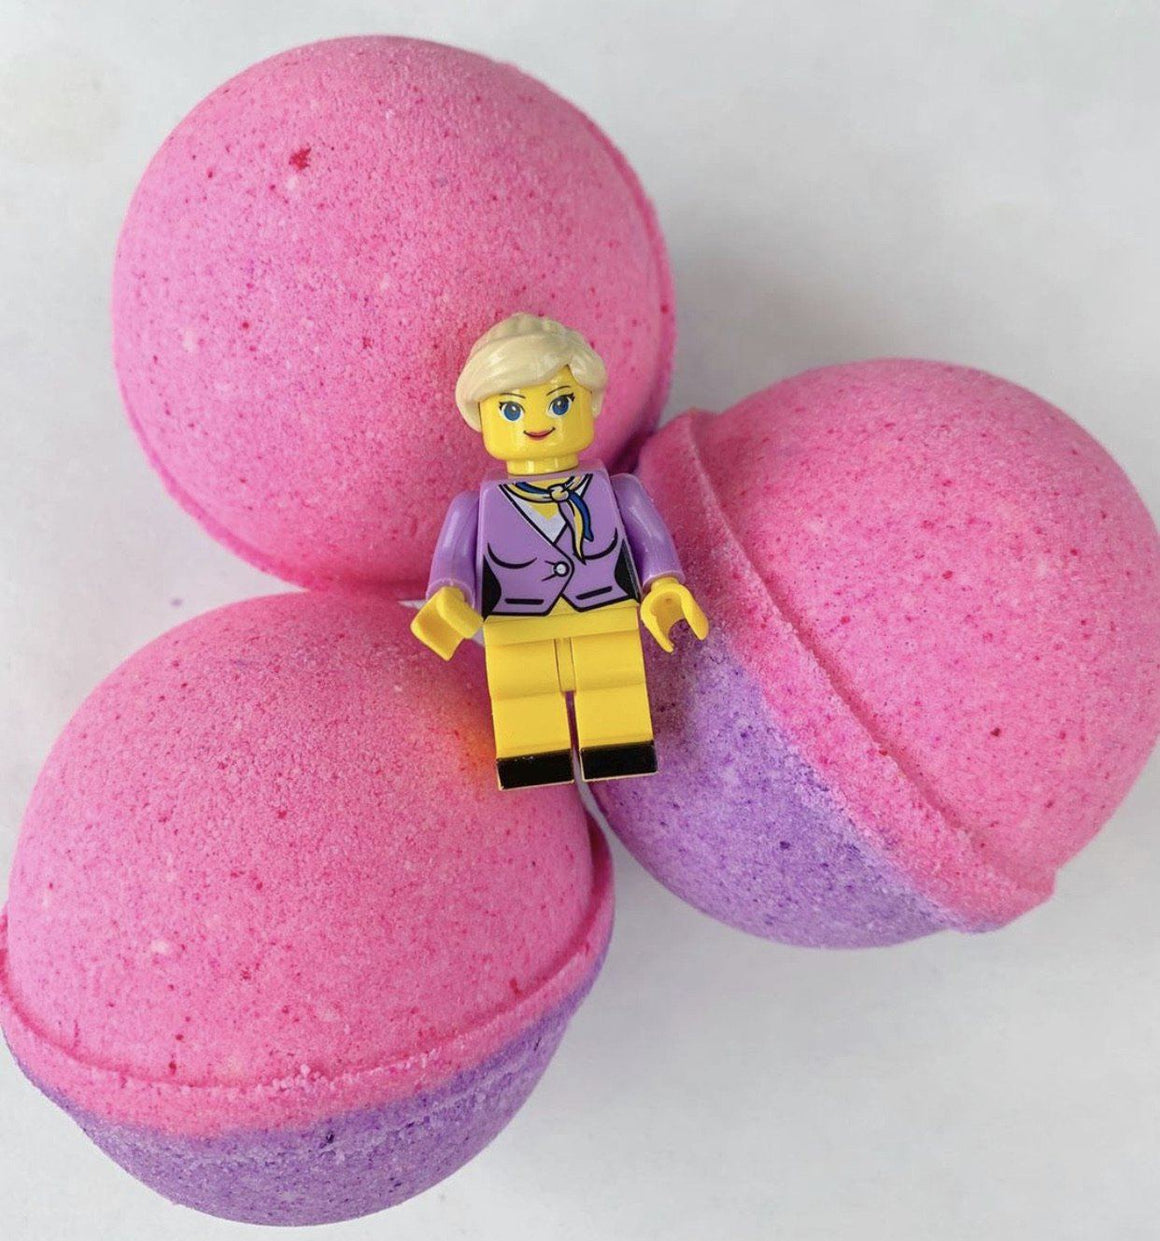 BATH FIZZY - LARGE SURPRISE TOY LEGO PINK, BATH, Crafted Bath - Bon + Co. Party Studio